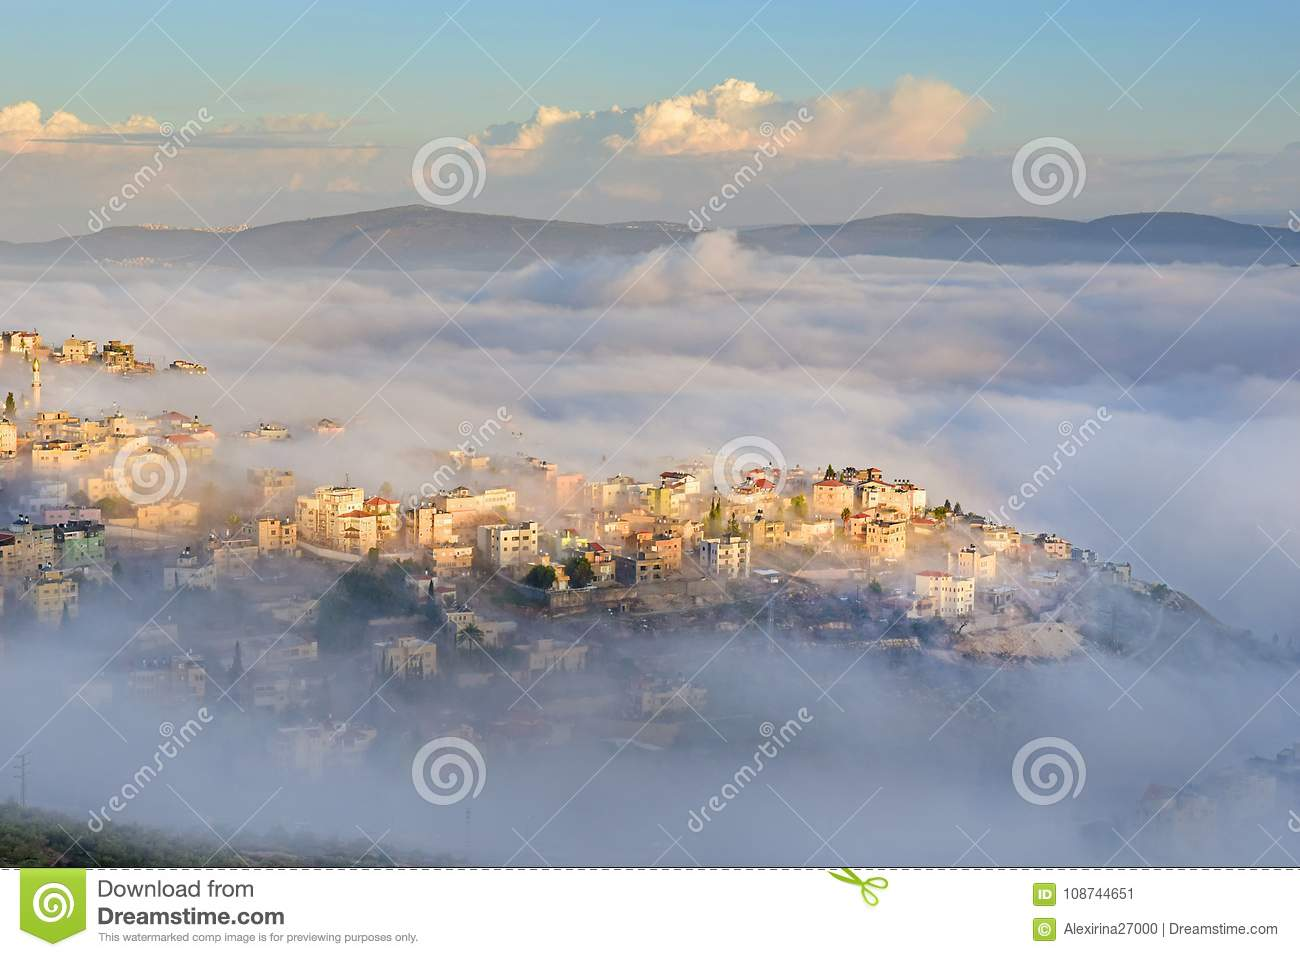 View Of The Shrouded In The Morning Fog Biblical Village Cana Of Galilee Kafr Kanna Neighborhood Nazareth In Israel Place Where Jesus Christ Showed First